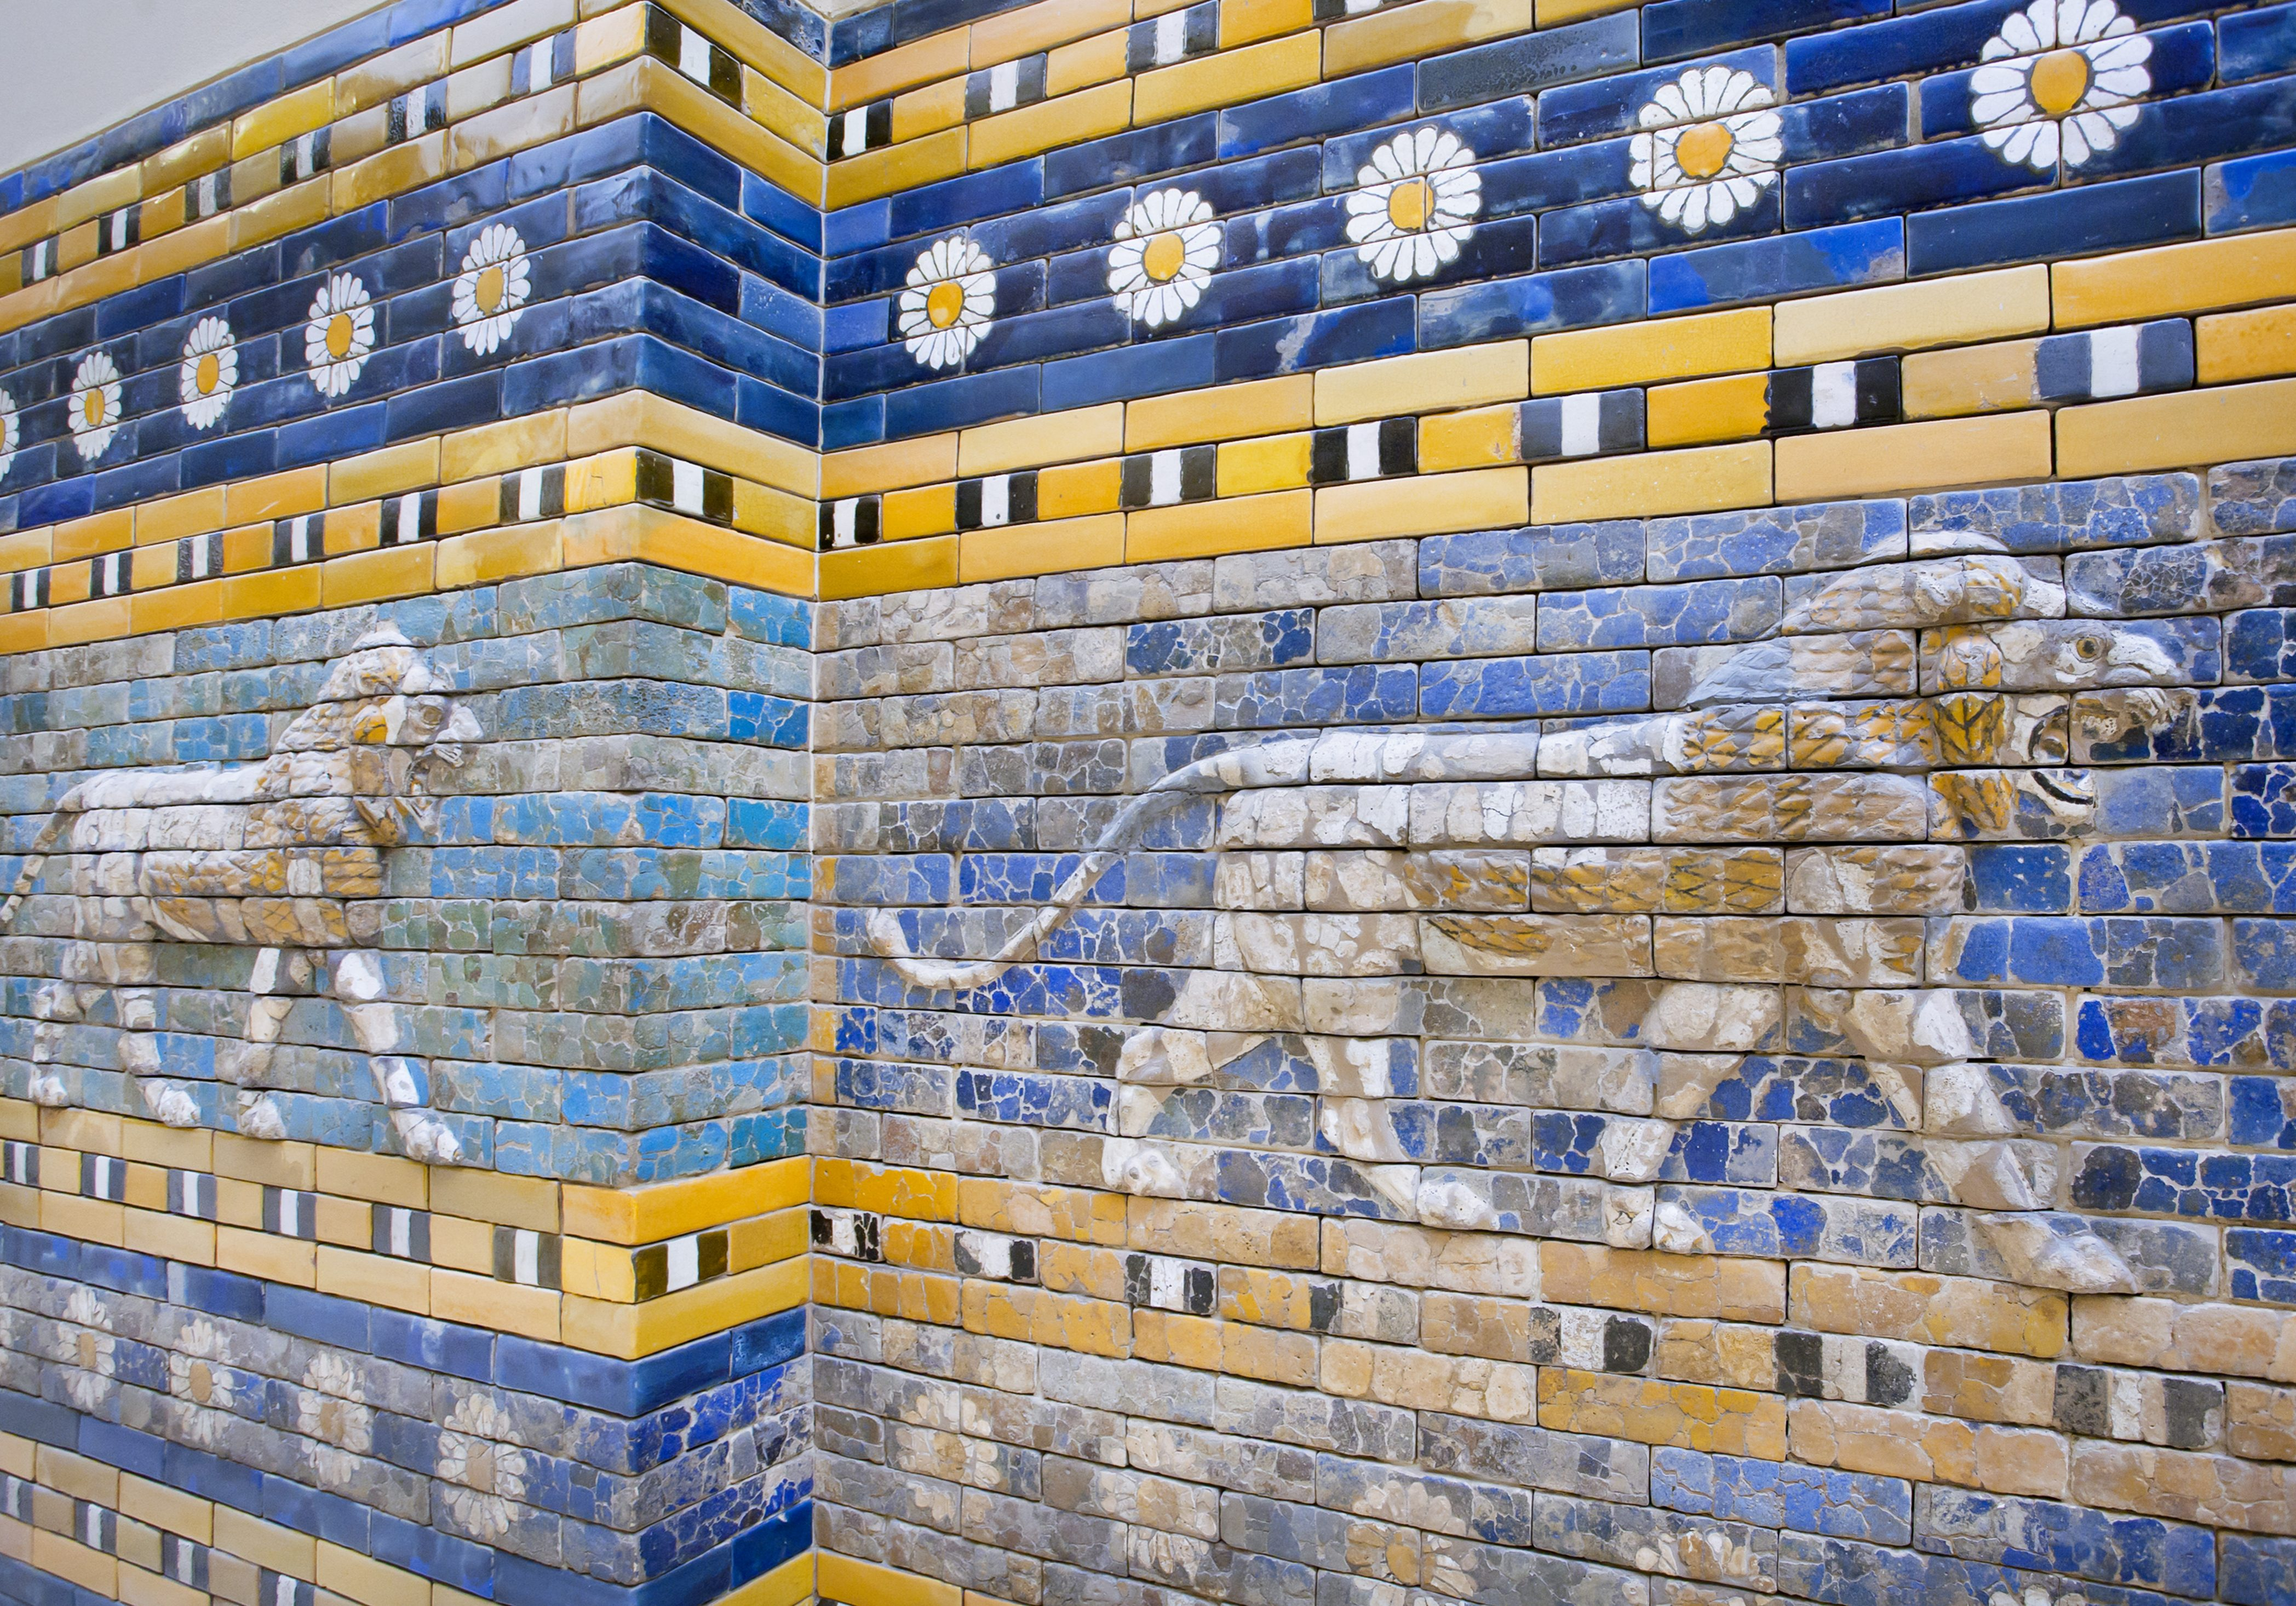 Lions following on the hunt, patterned wall of  the historical city of Babylon. Artifact saved by Pergamon Museum in Berlin.